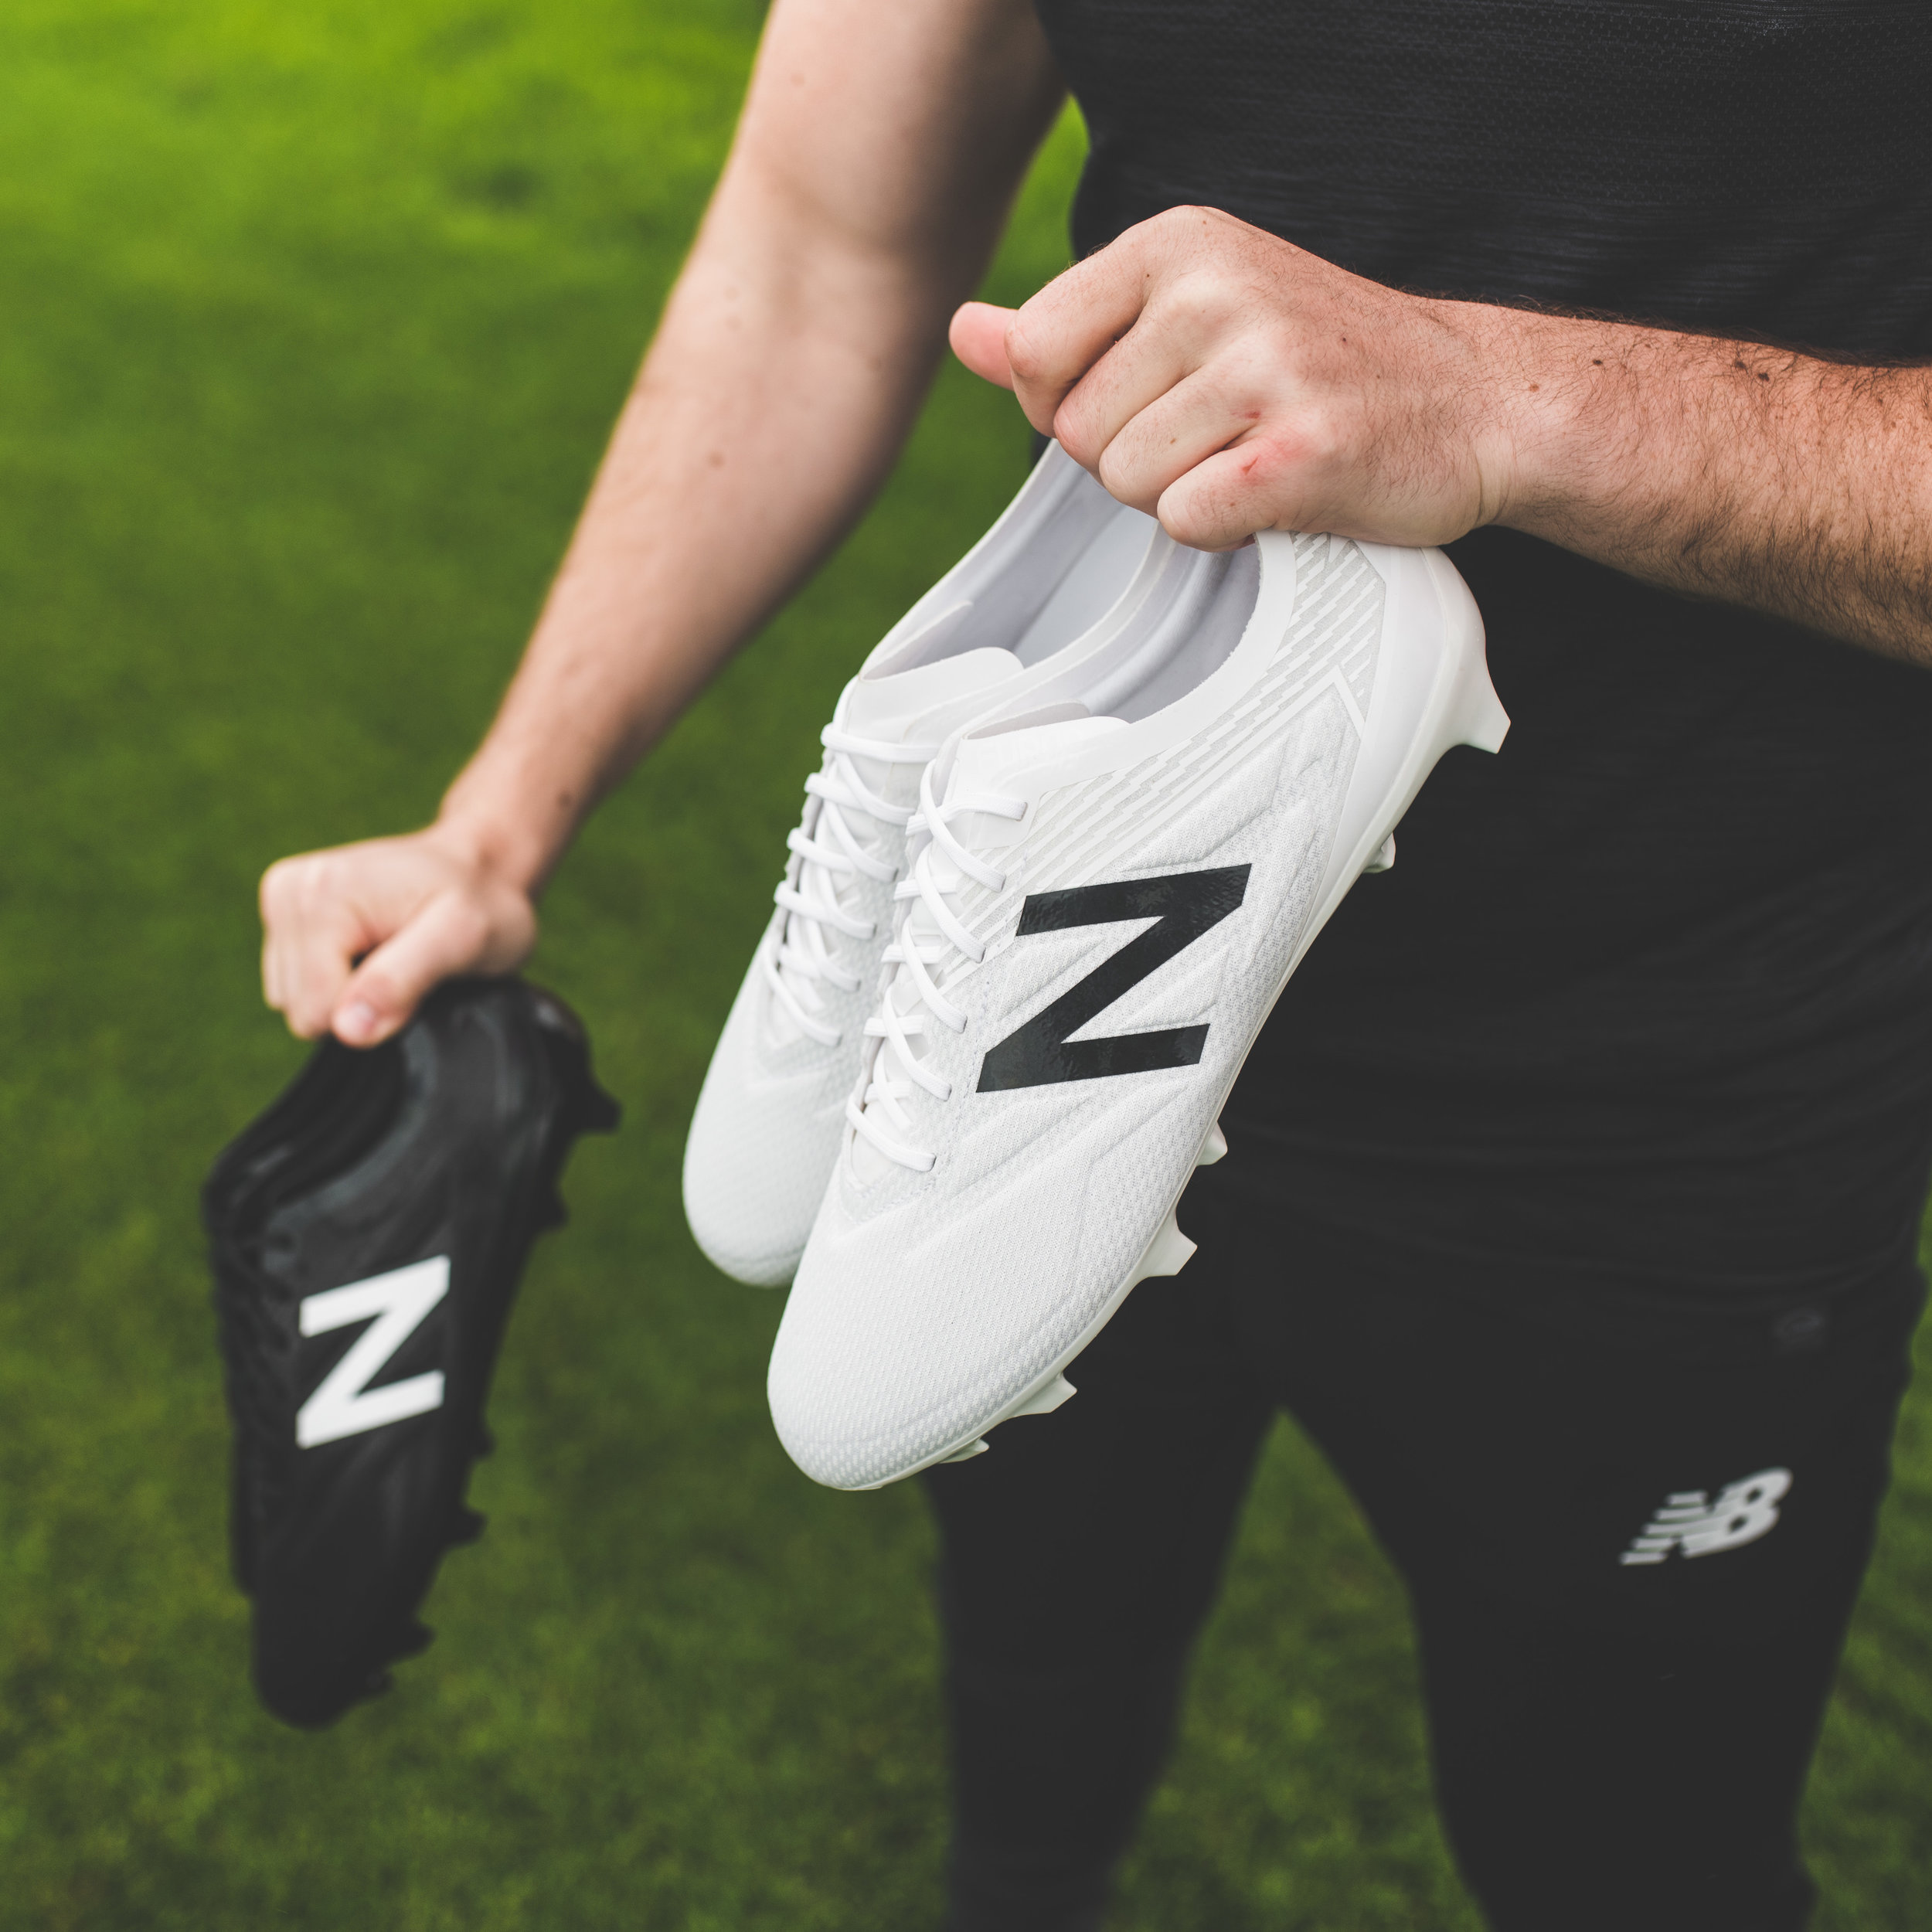 4fb836d24 BLACKOUT AND WHITEOUT BY NEW BALANCE. New Balance has released two new  colourways ...